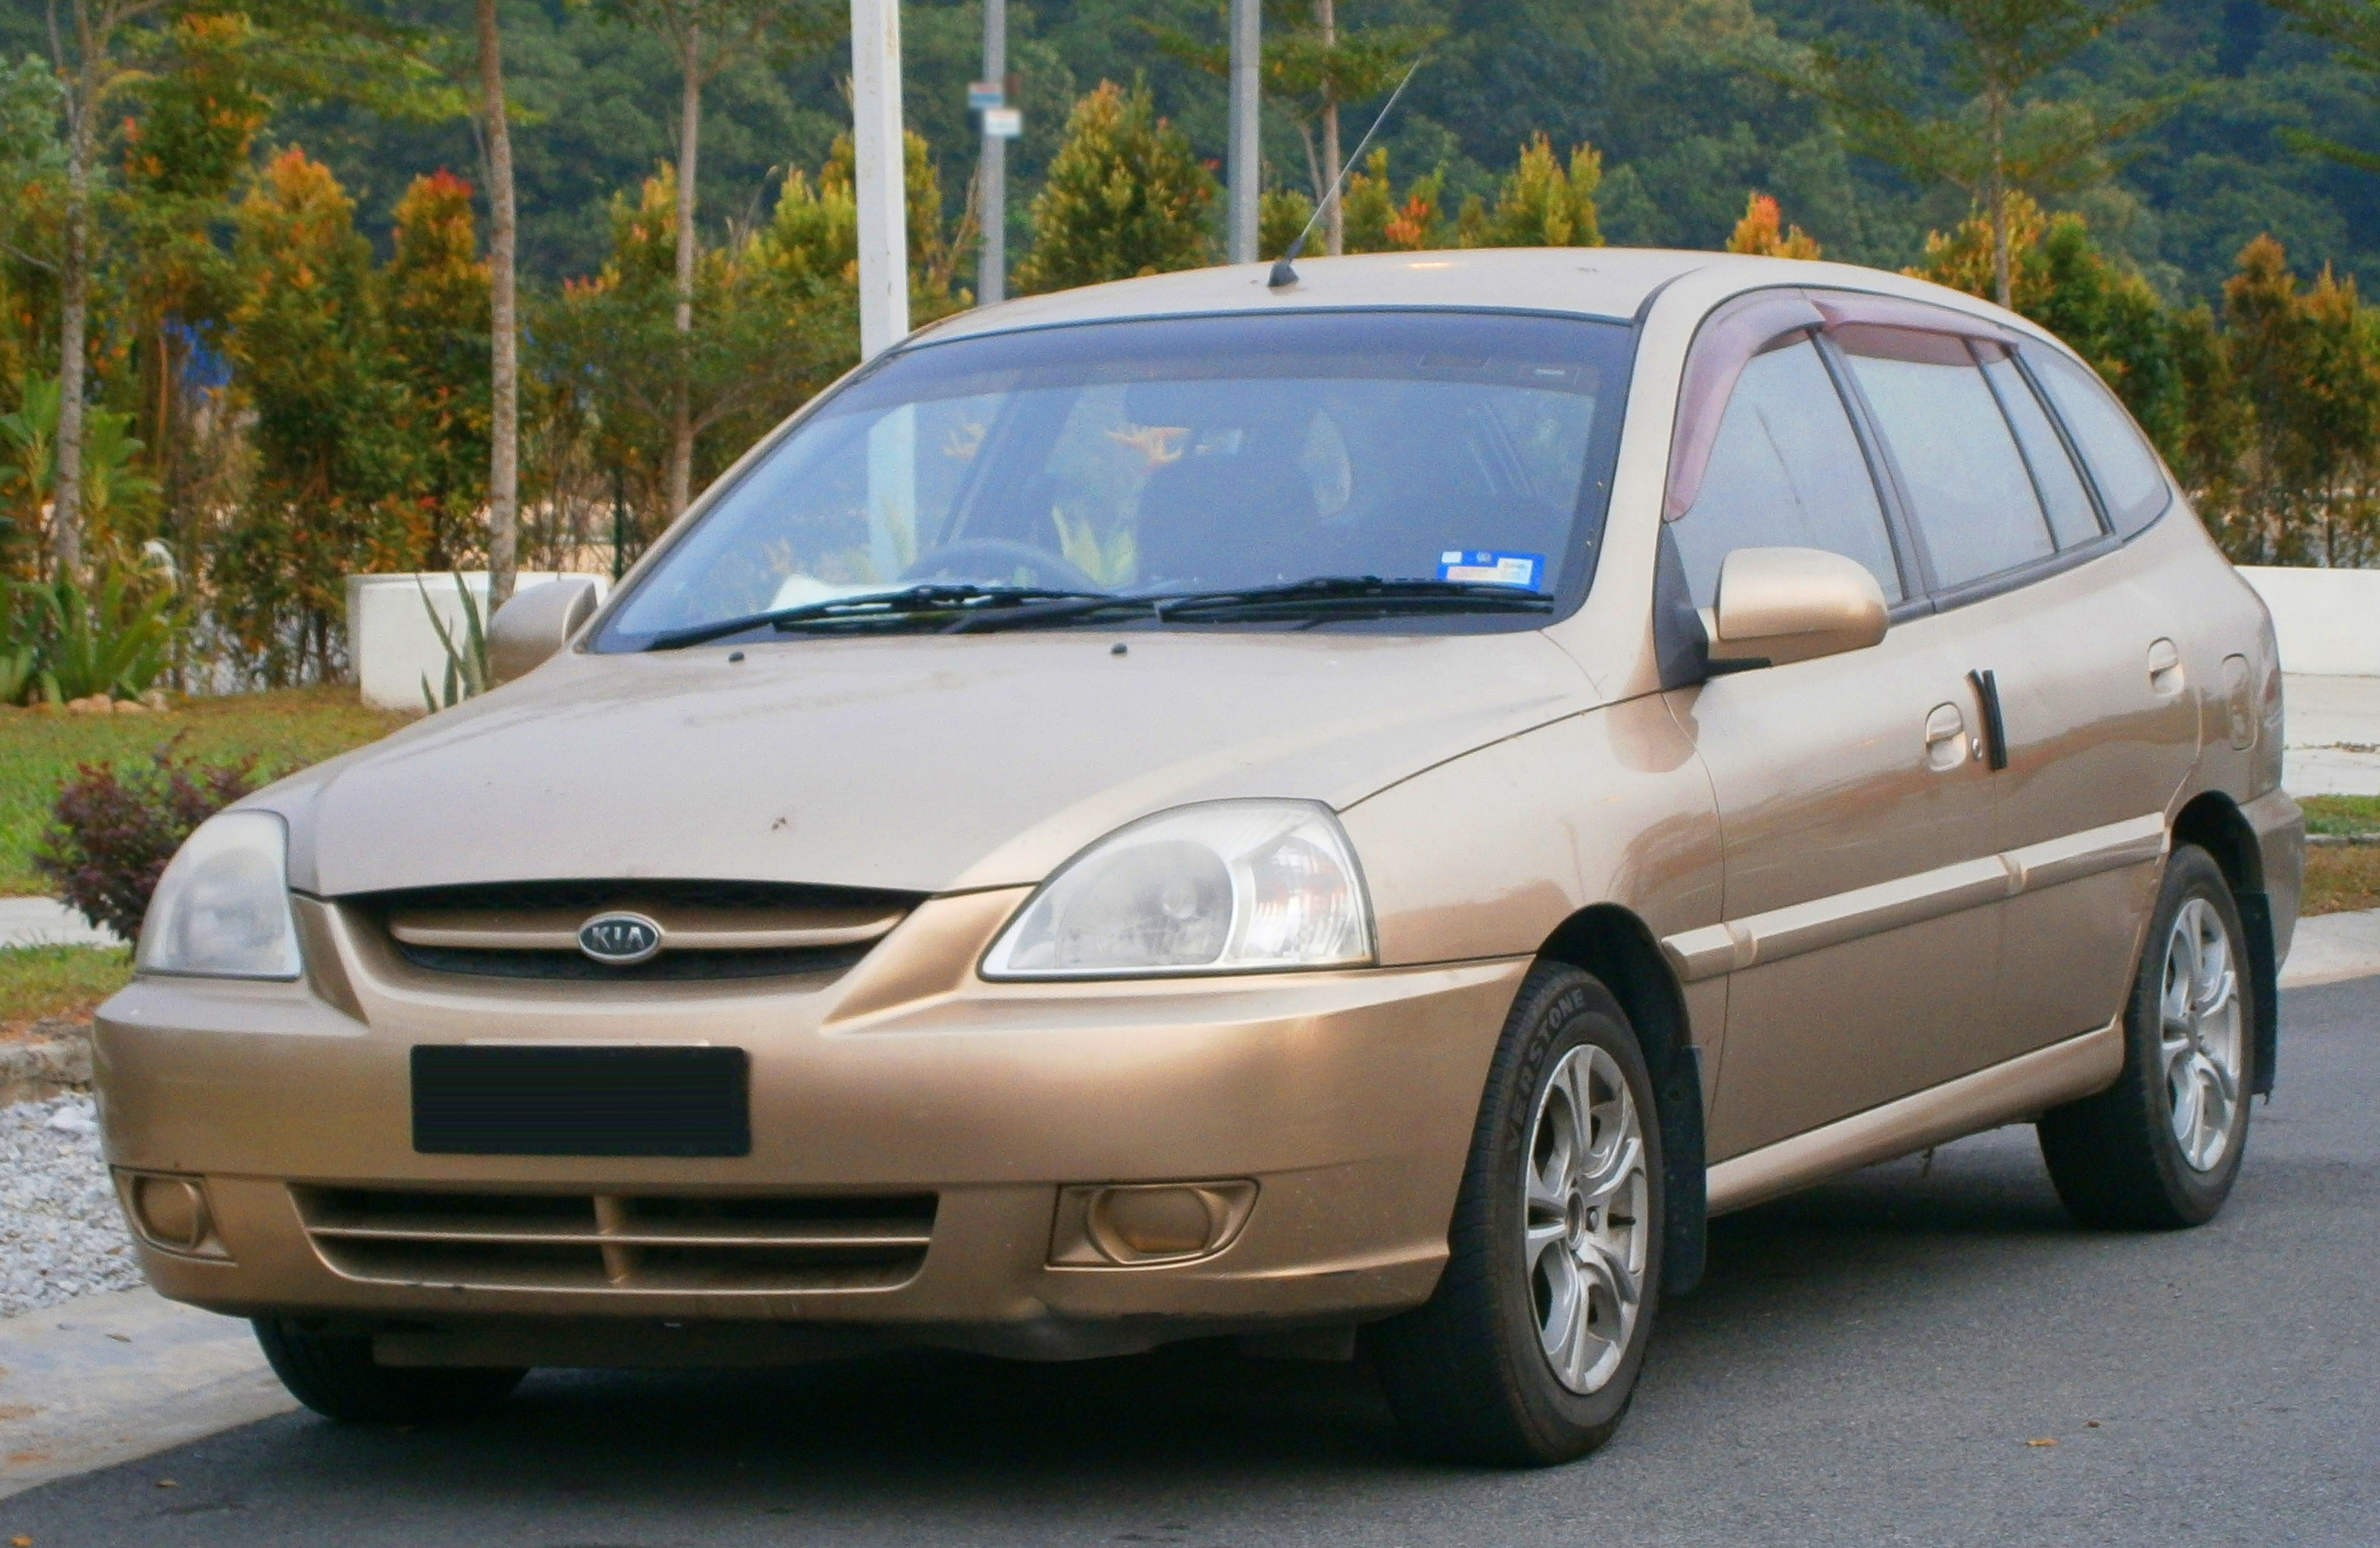 file 2004 kia rio ls hatchback in puchong malaysia 01. Black Bedroom Furniture Sets. Home Design Ideas